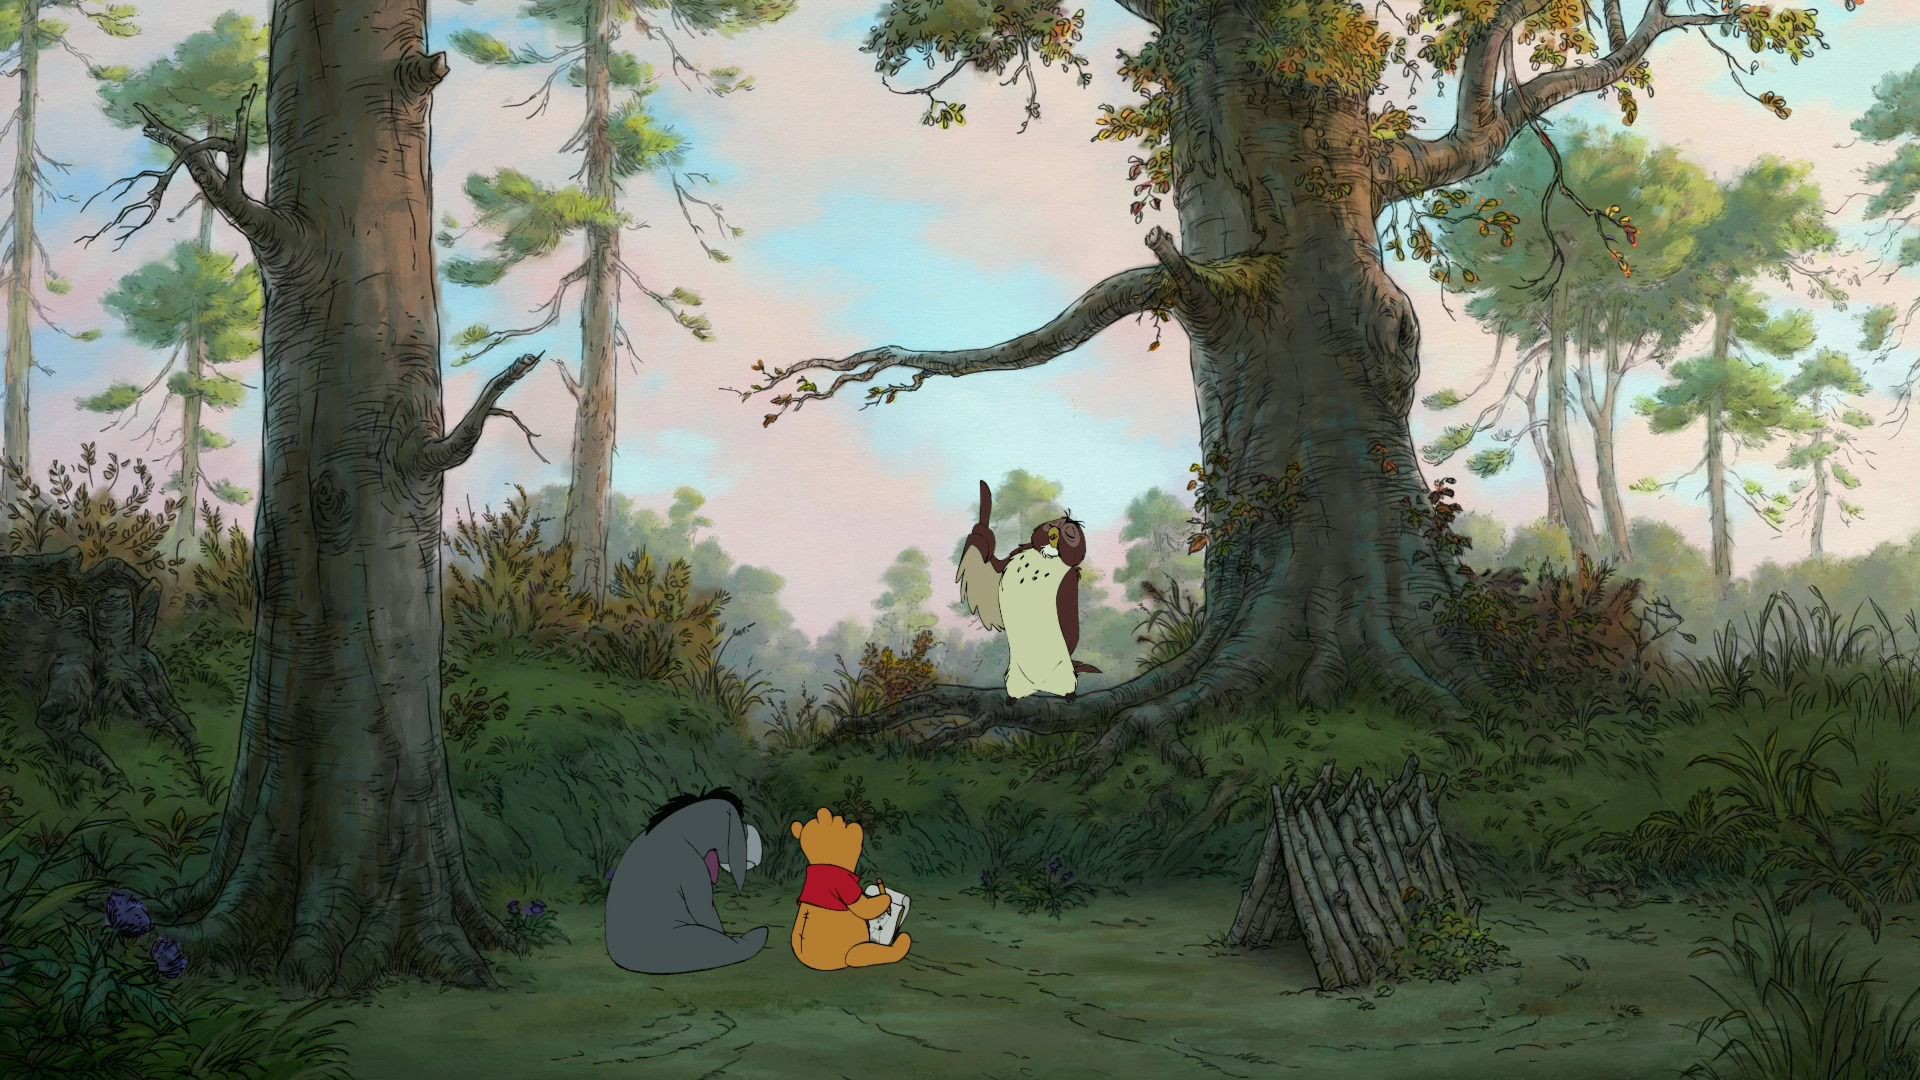 1920x1080 winnie the pooh forest - Google Search